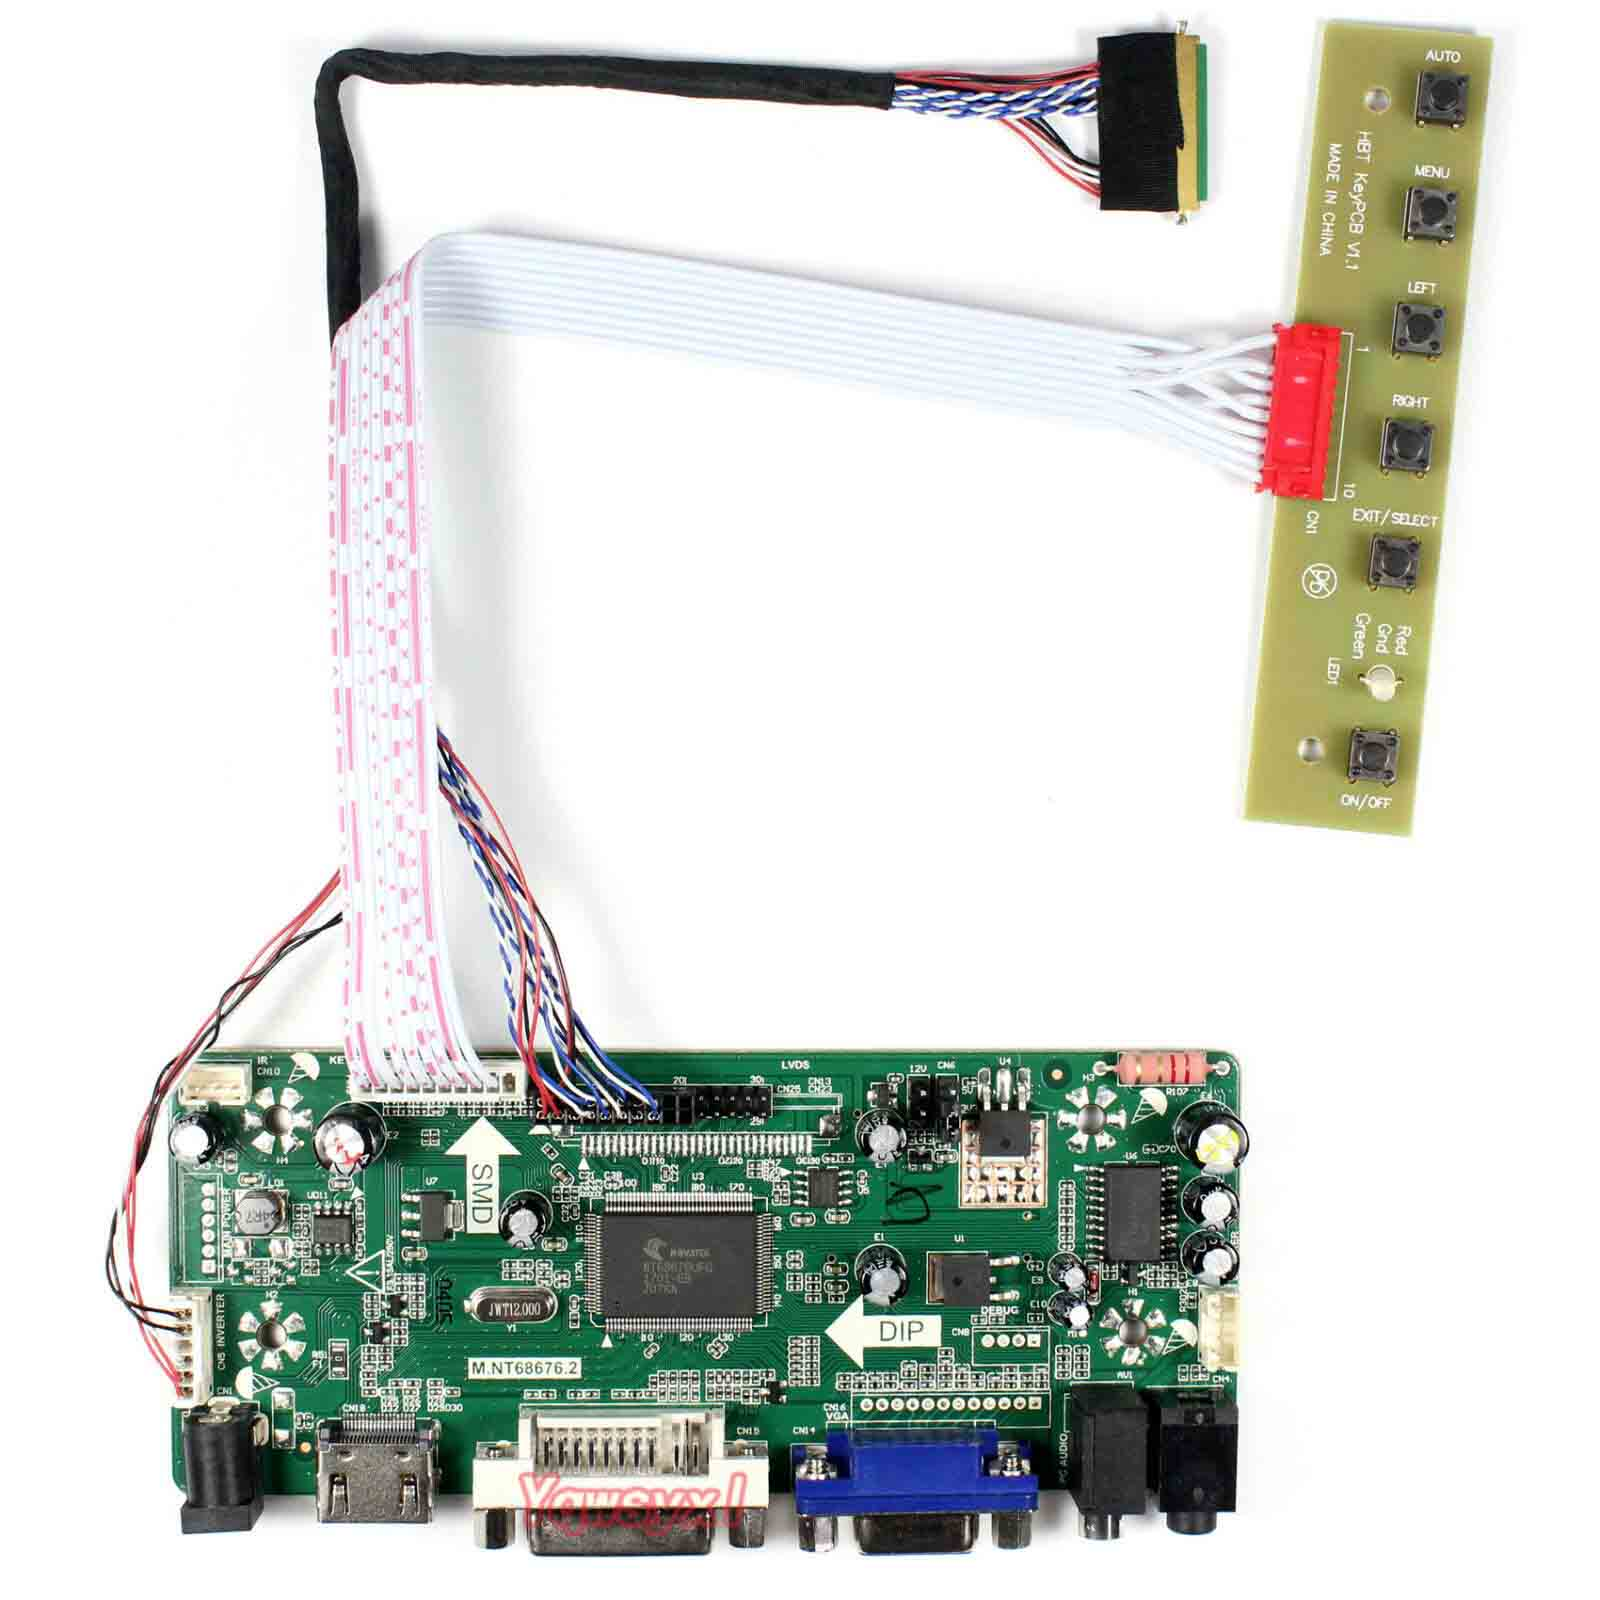 Yqwsyxl Control <font><b>Board</b></font> Monitor Kit for <font><b>B156XW02</b></font> V1/<font><b>V3</b></font>/V6 <font><b>B156XW02</b></font> V7 HDMI+ DVI+VGA LCD LED screen <font><b>Controller</b></font> <font><b>Board</b></font> Driver image